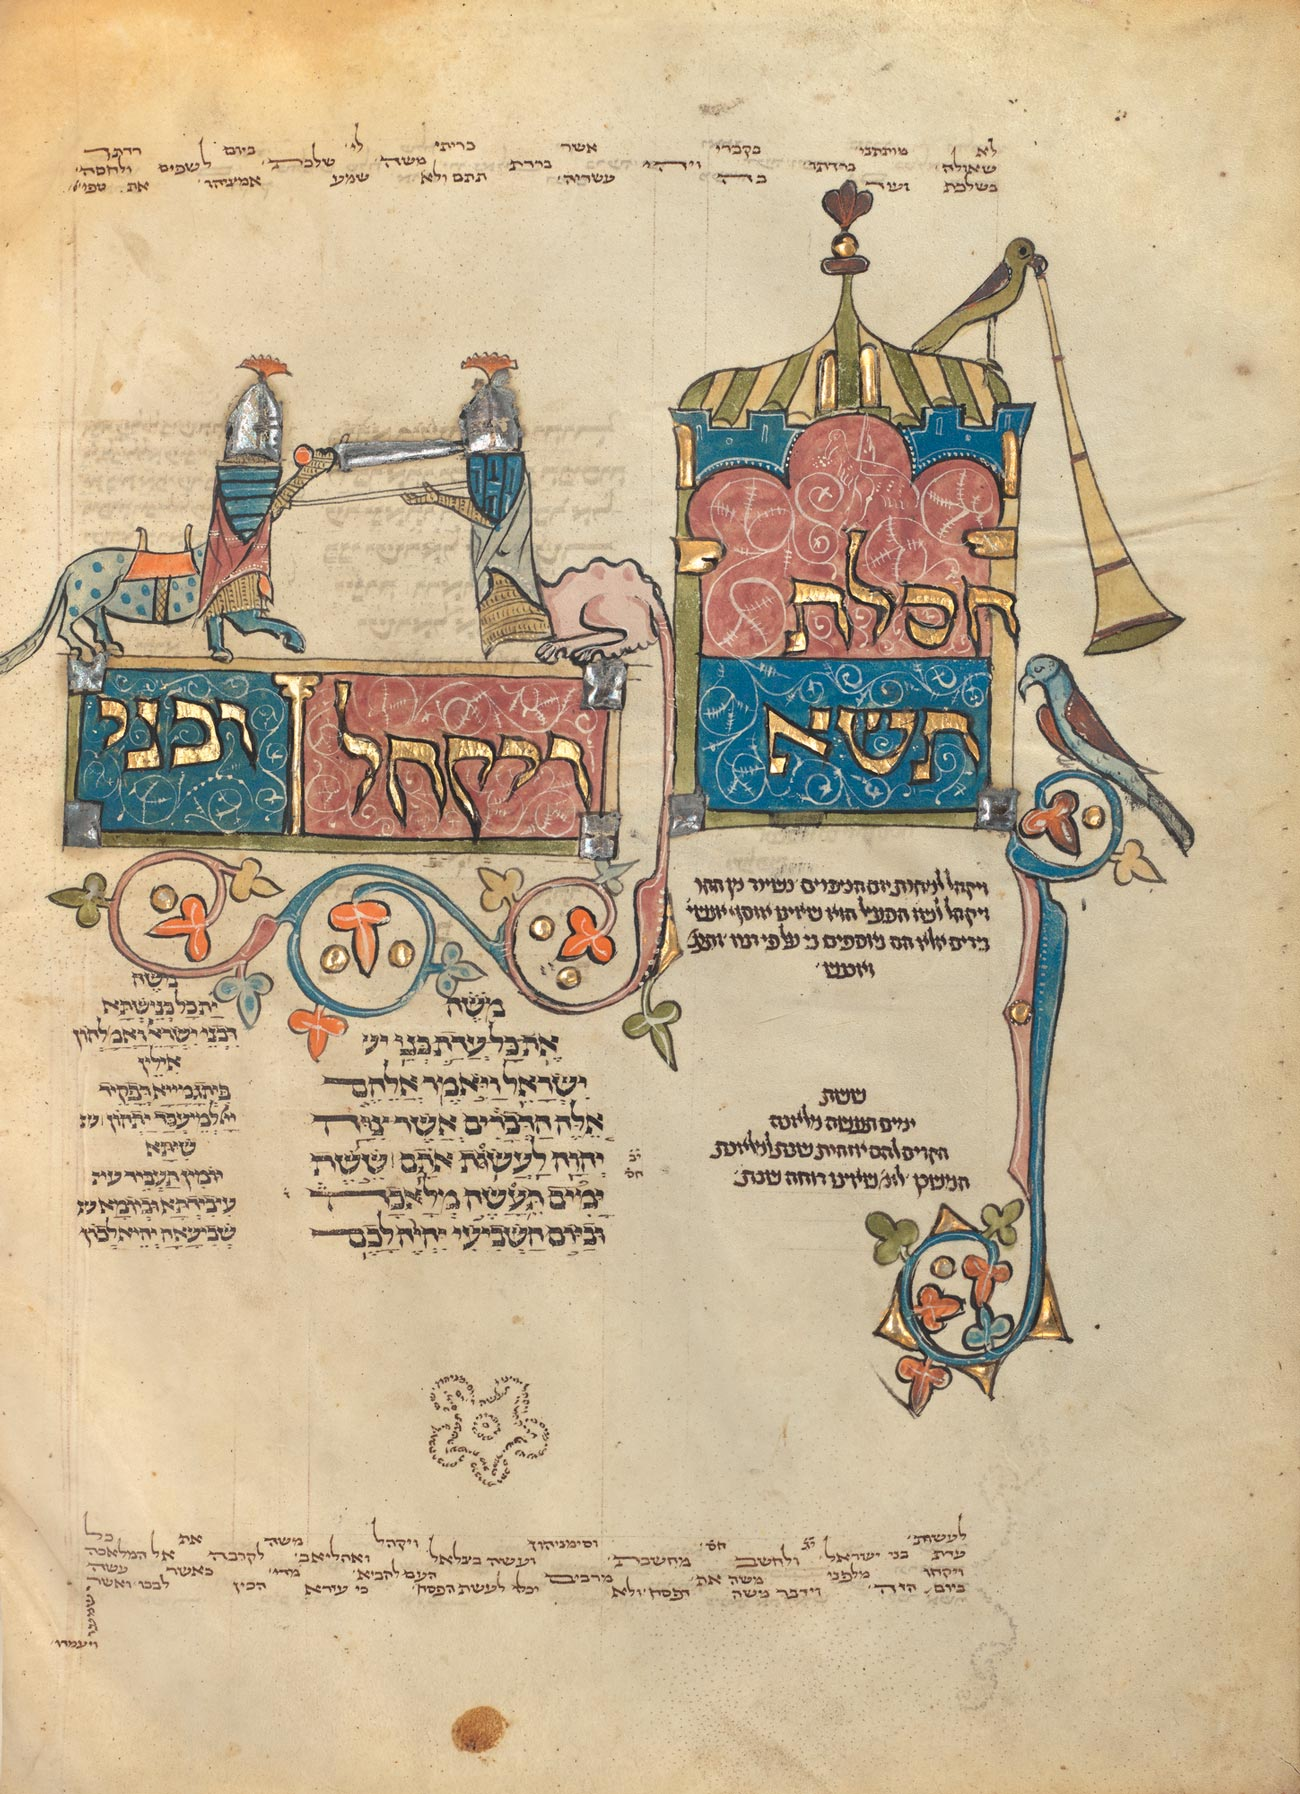 Illuminated manuscript with Hebrew letters in various sizes from tiny to large and gilded. Some lettering forms a star shape and illustrations show two animal-human figures jousting next to structure.